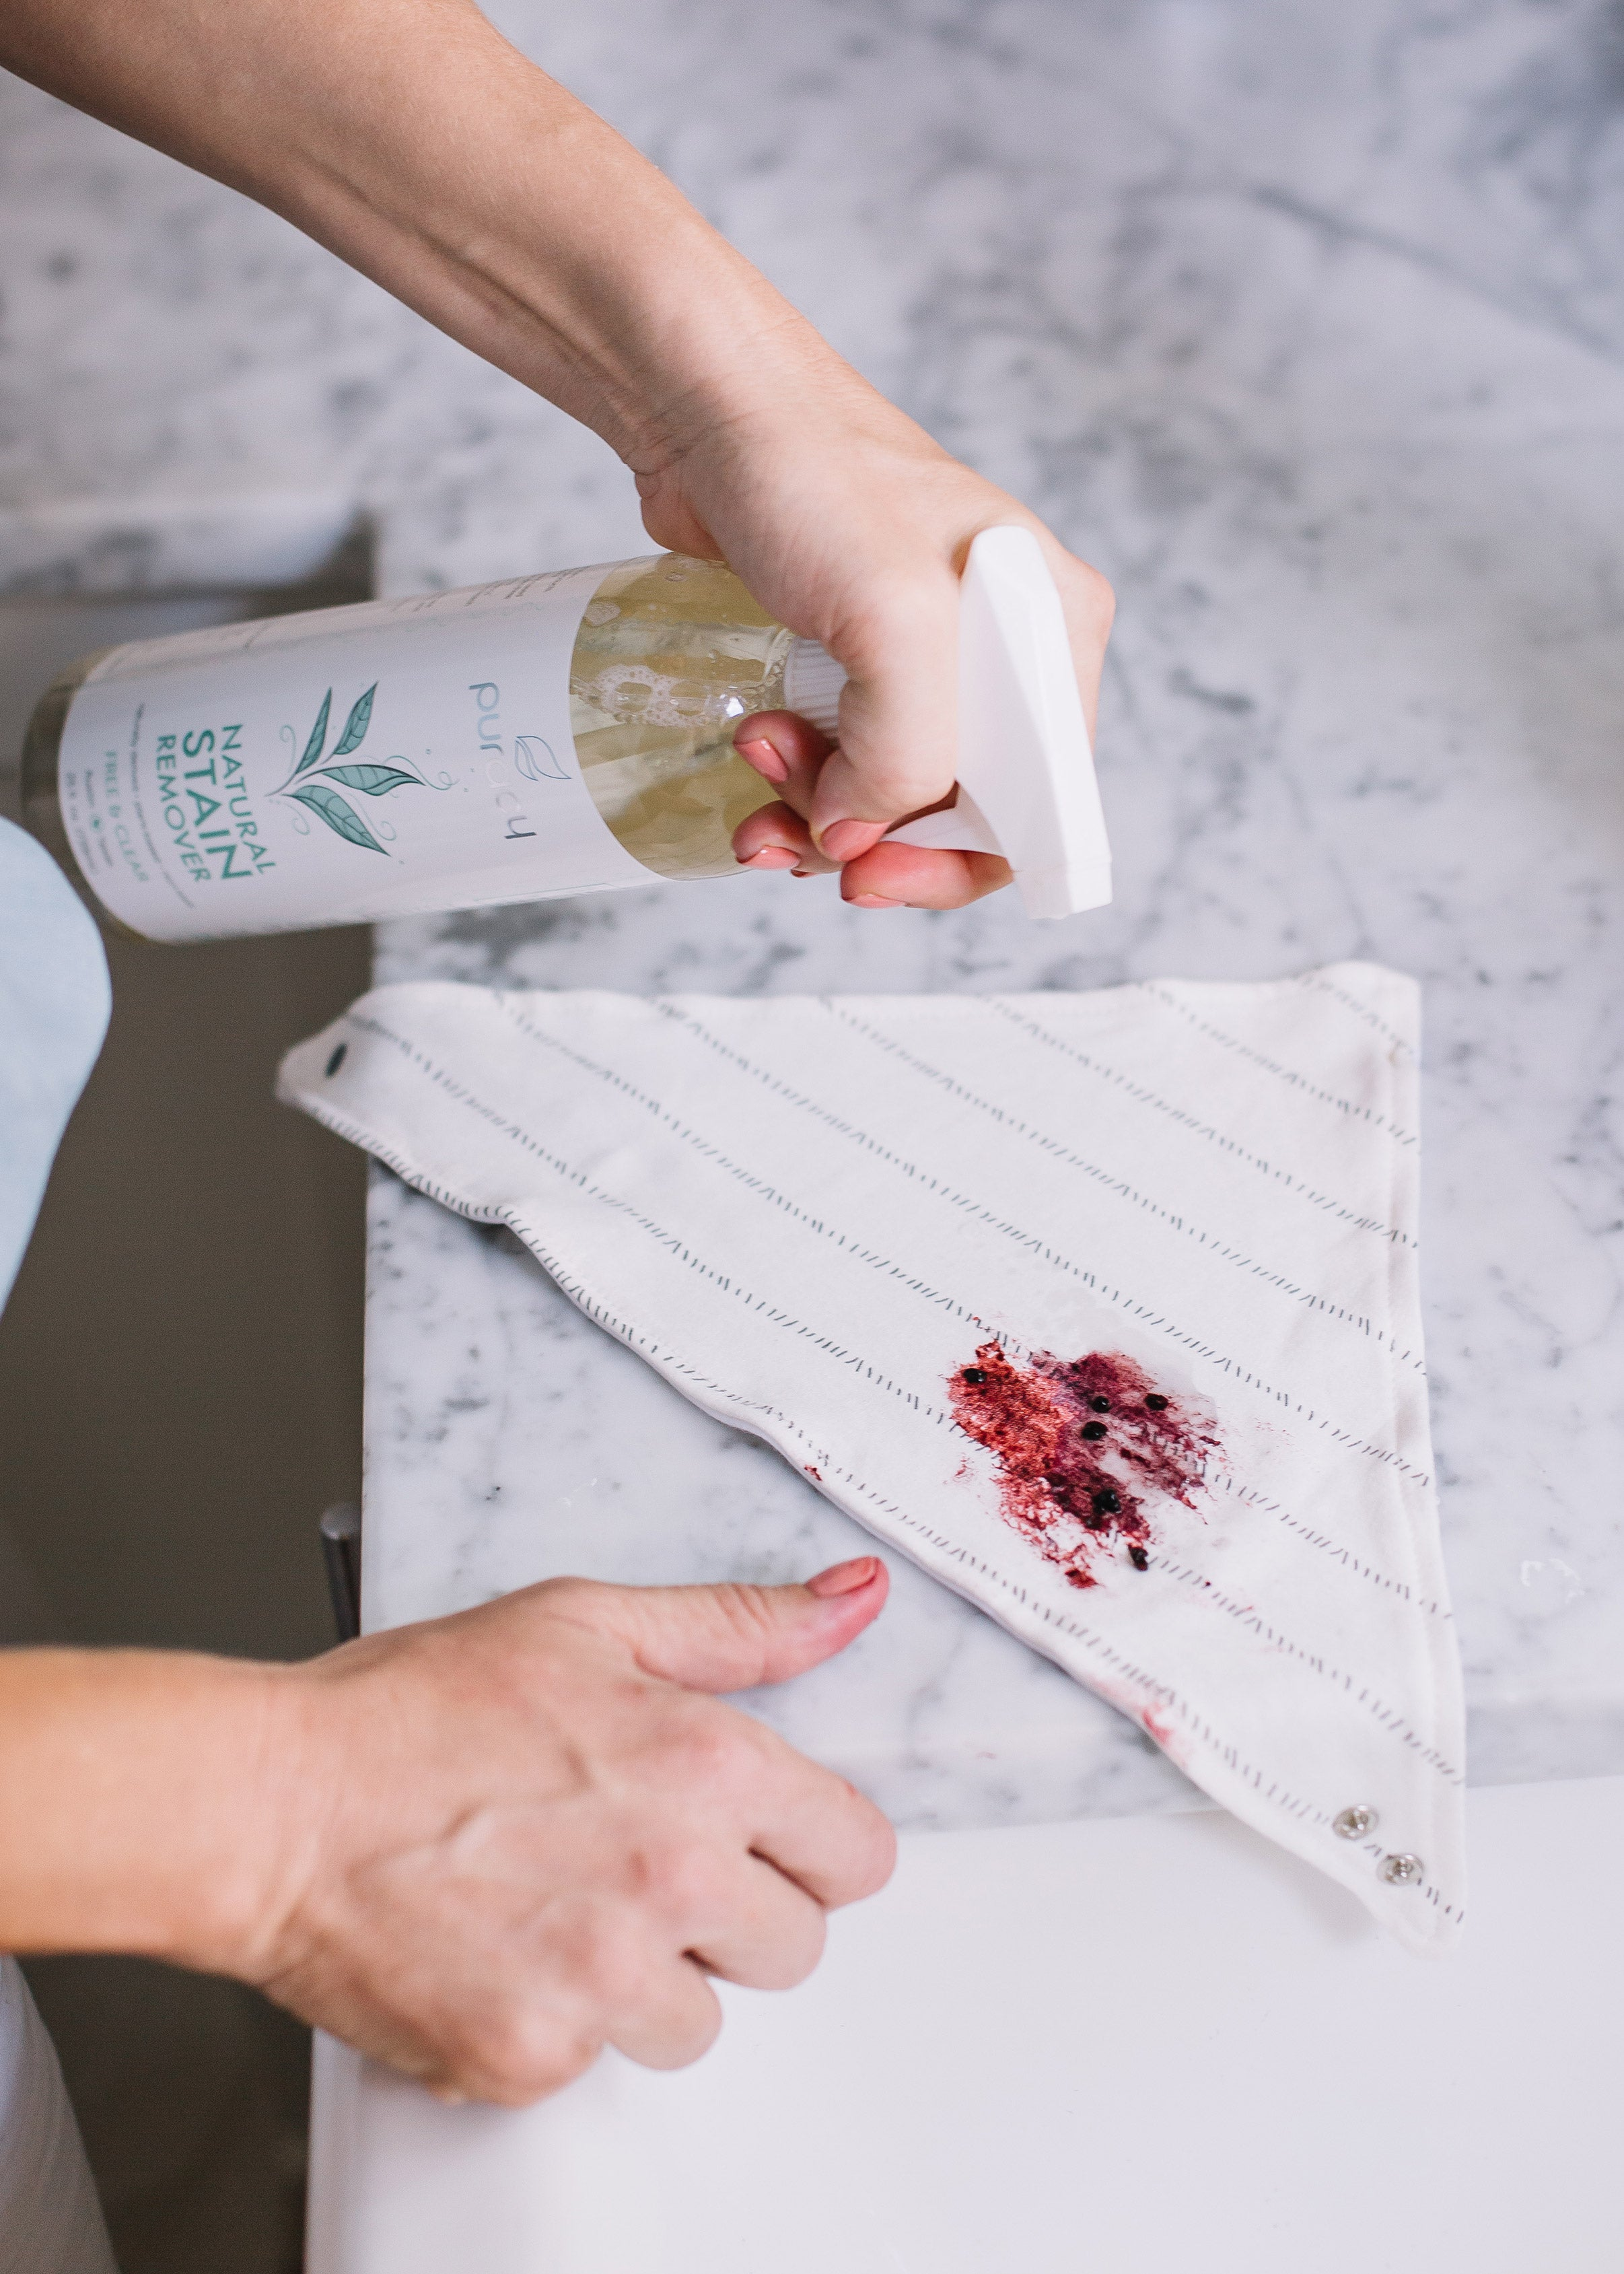 Clean stains with Puracy Natural Stain Remover